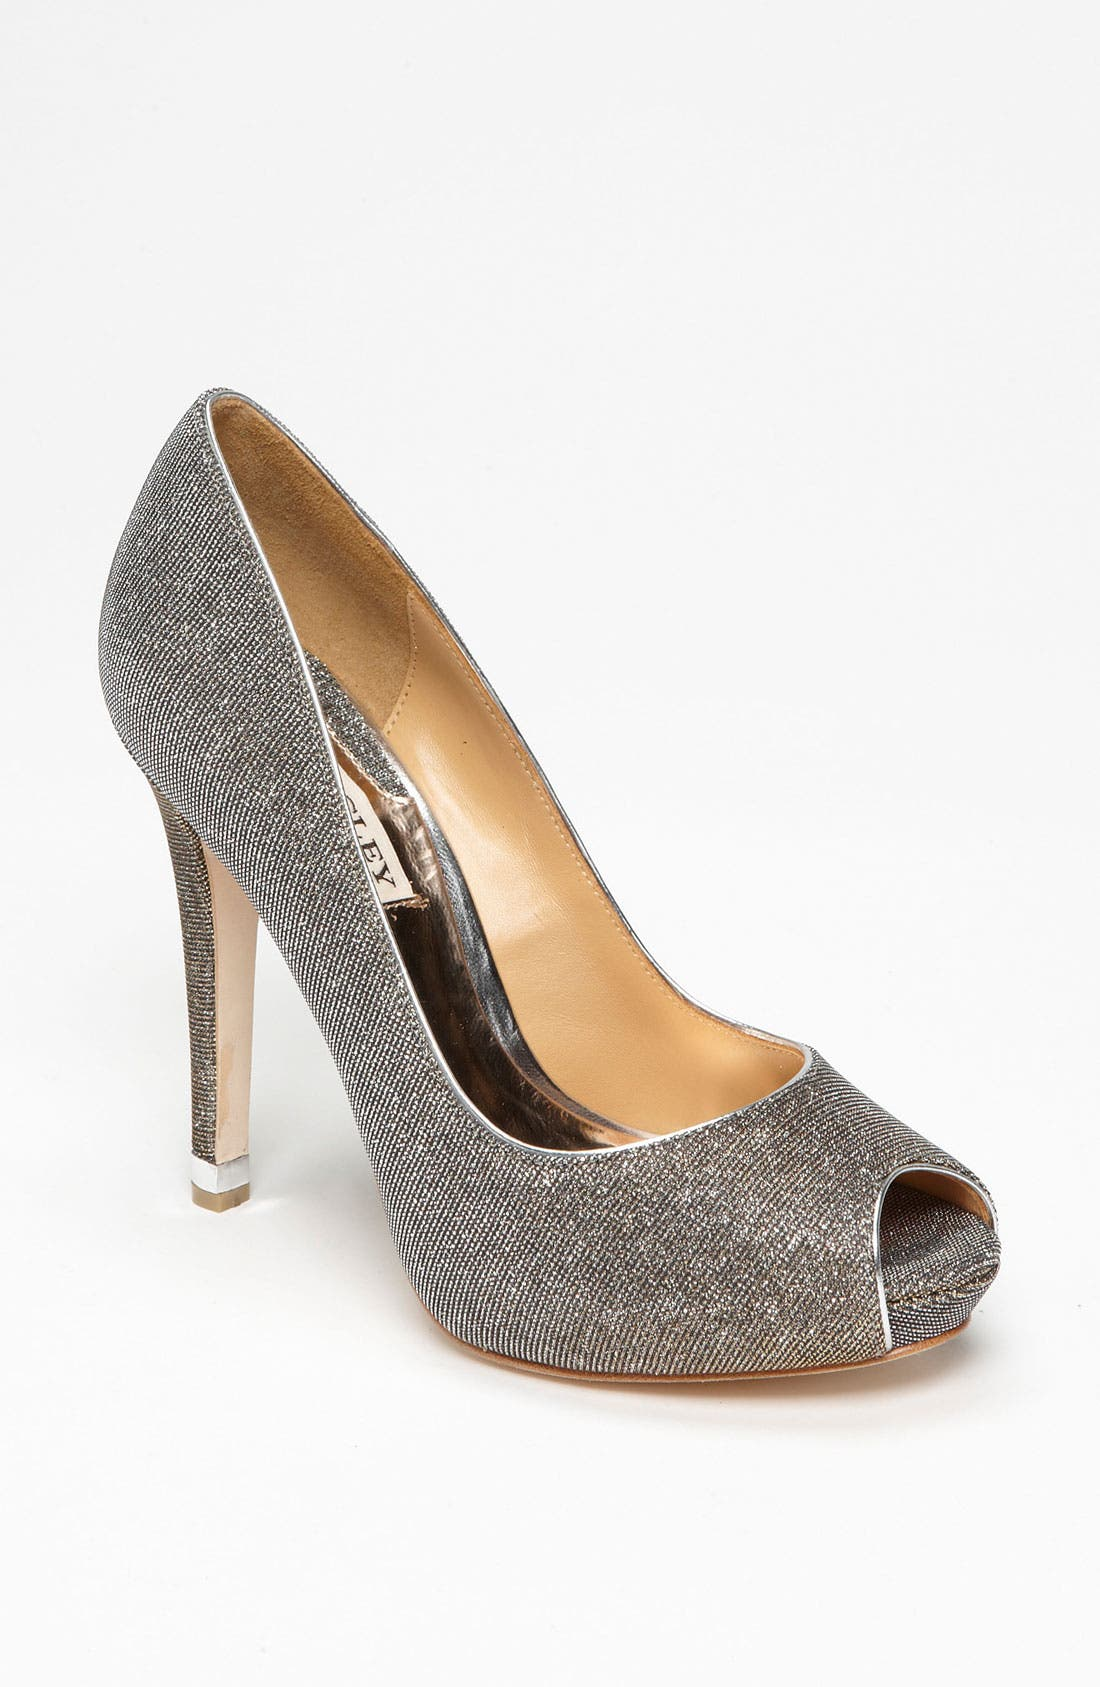 Main Image - Badgley Mischka 'Humbie IV' Pump